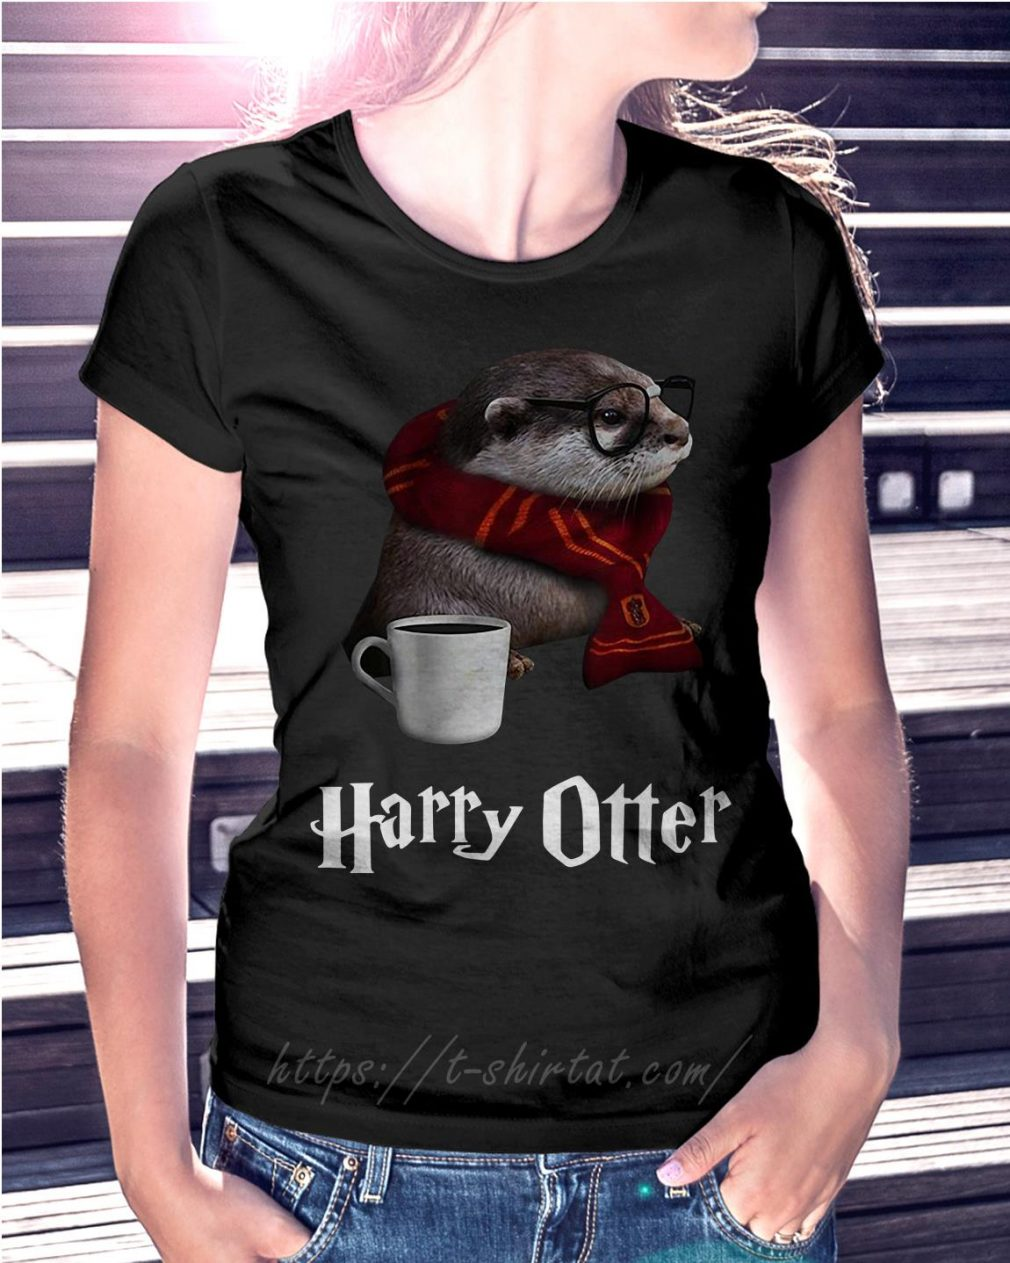 Harry Potter Harry Otter